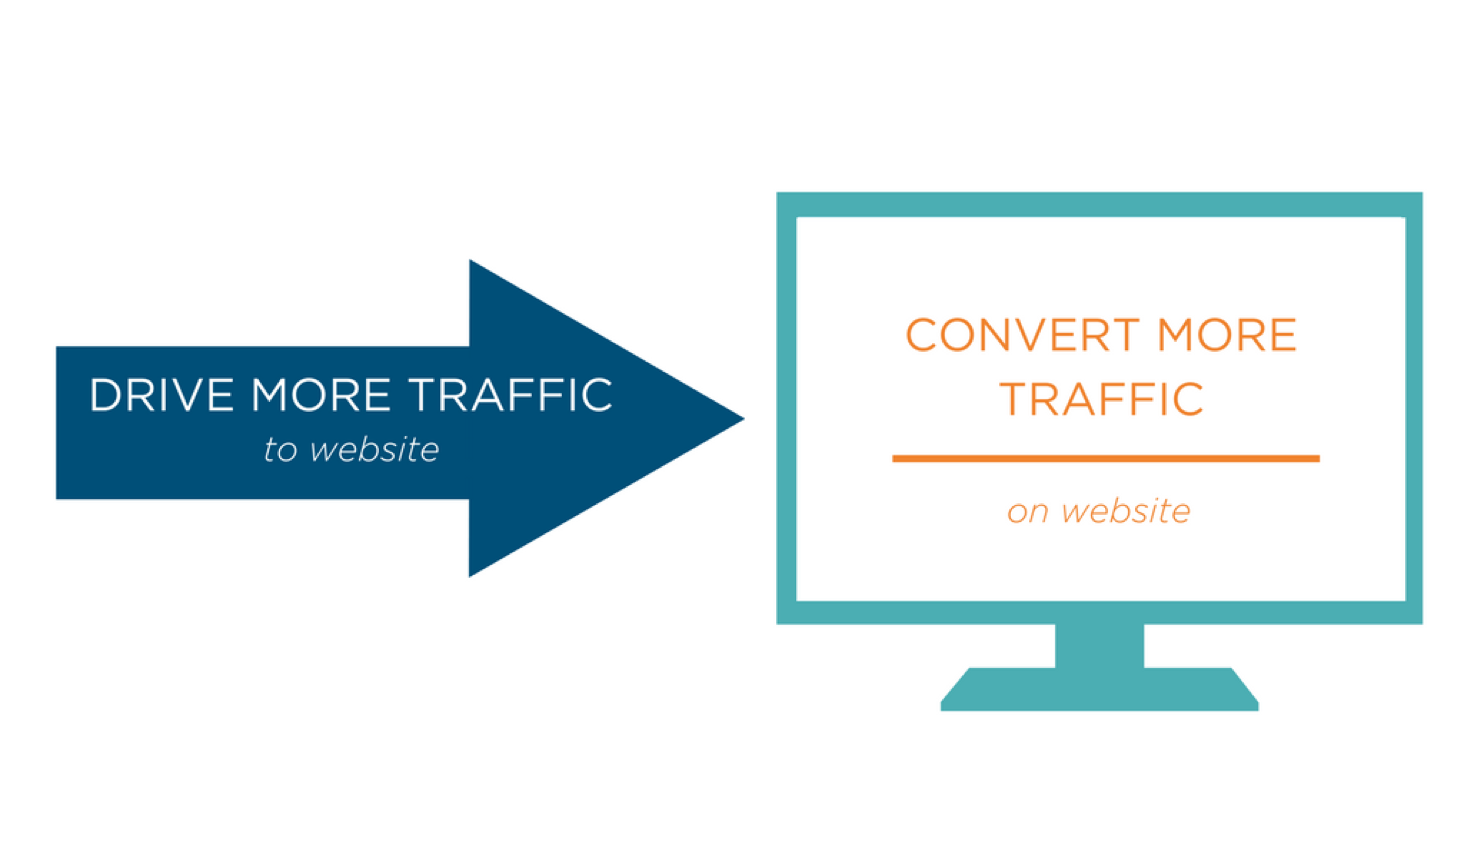 Drive and Convert More Traffic